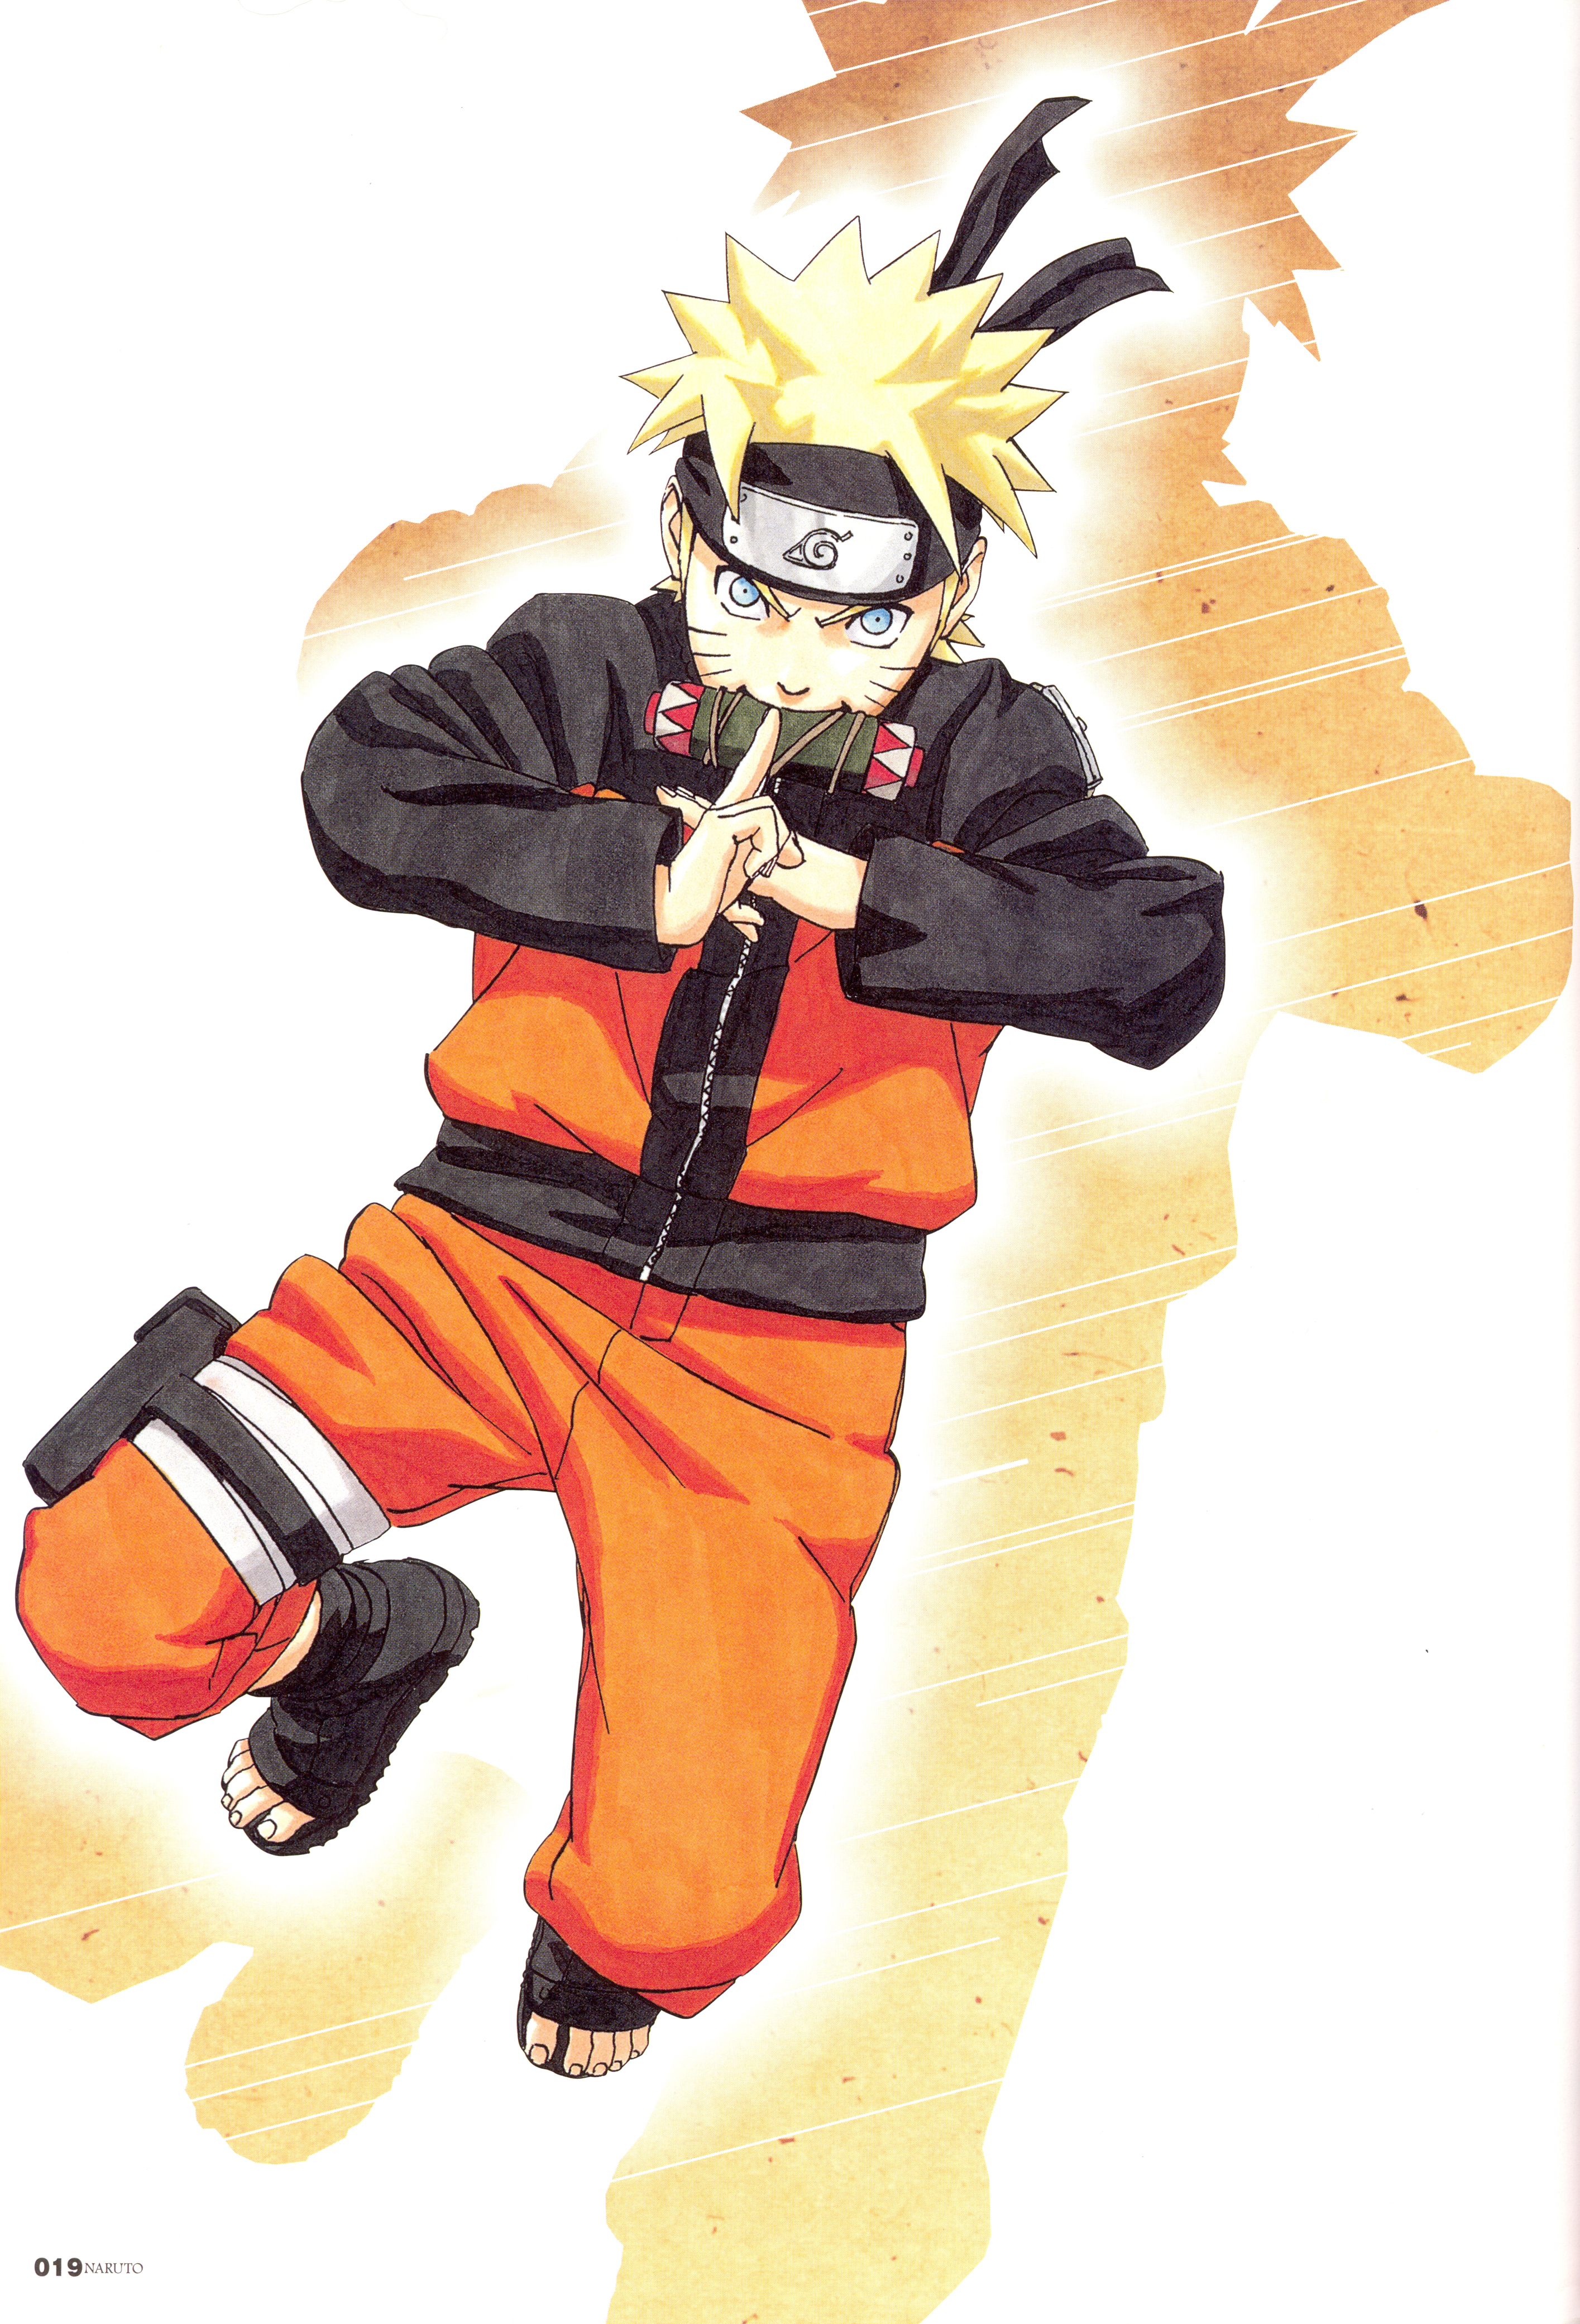 Naruto Scroll in Mouth, Gets Ready to Activate a Jutsu